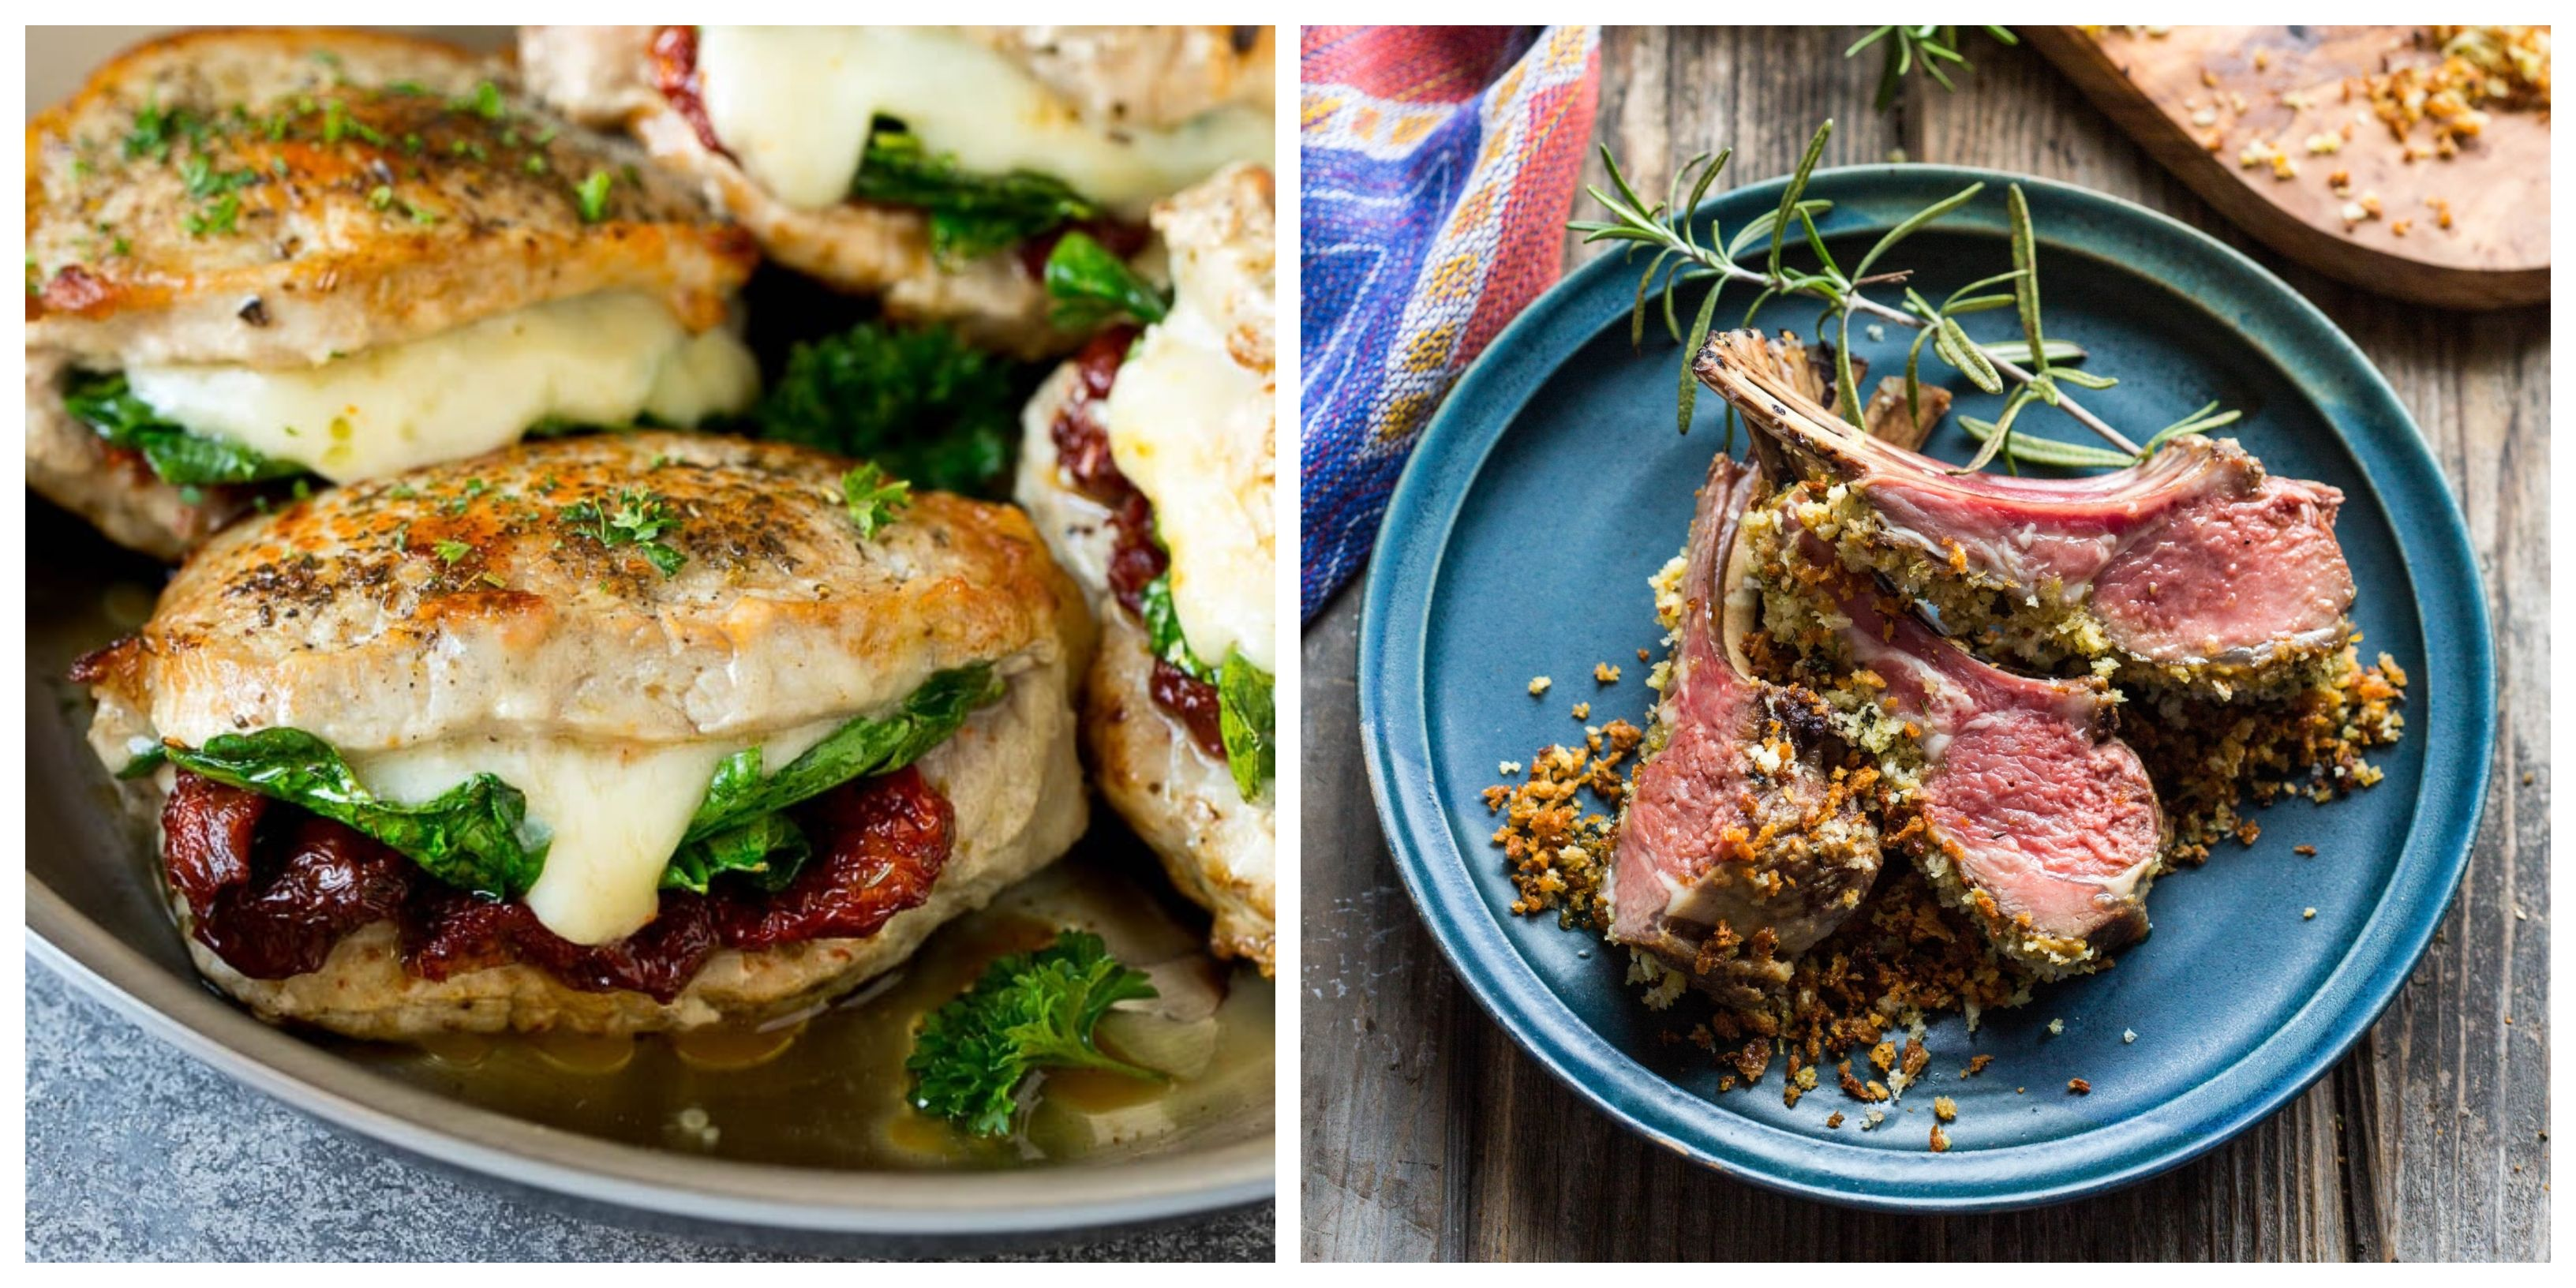 50 Dinner Ideas for Two for the Most Romantic Date Night Ever